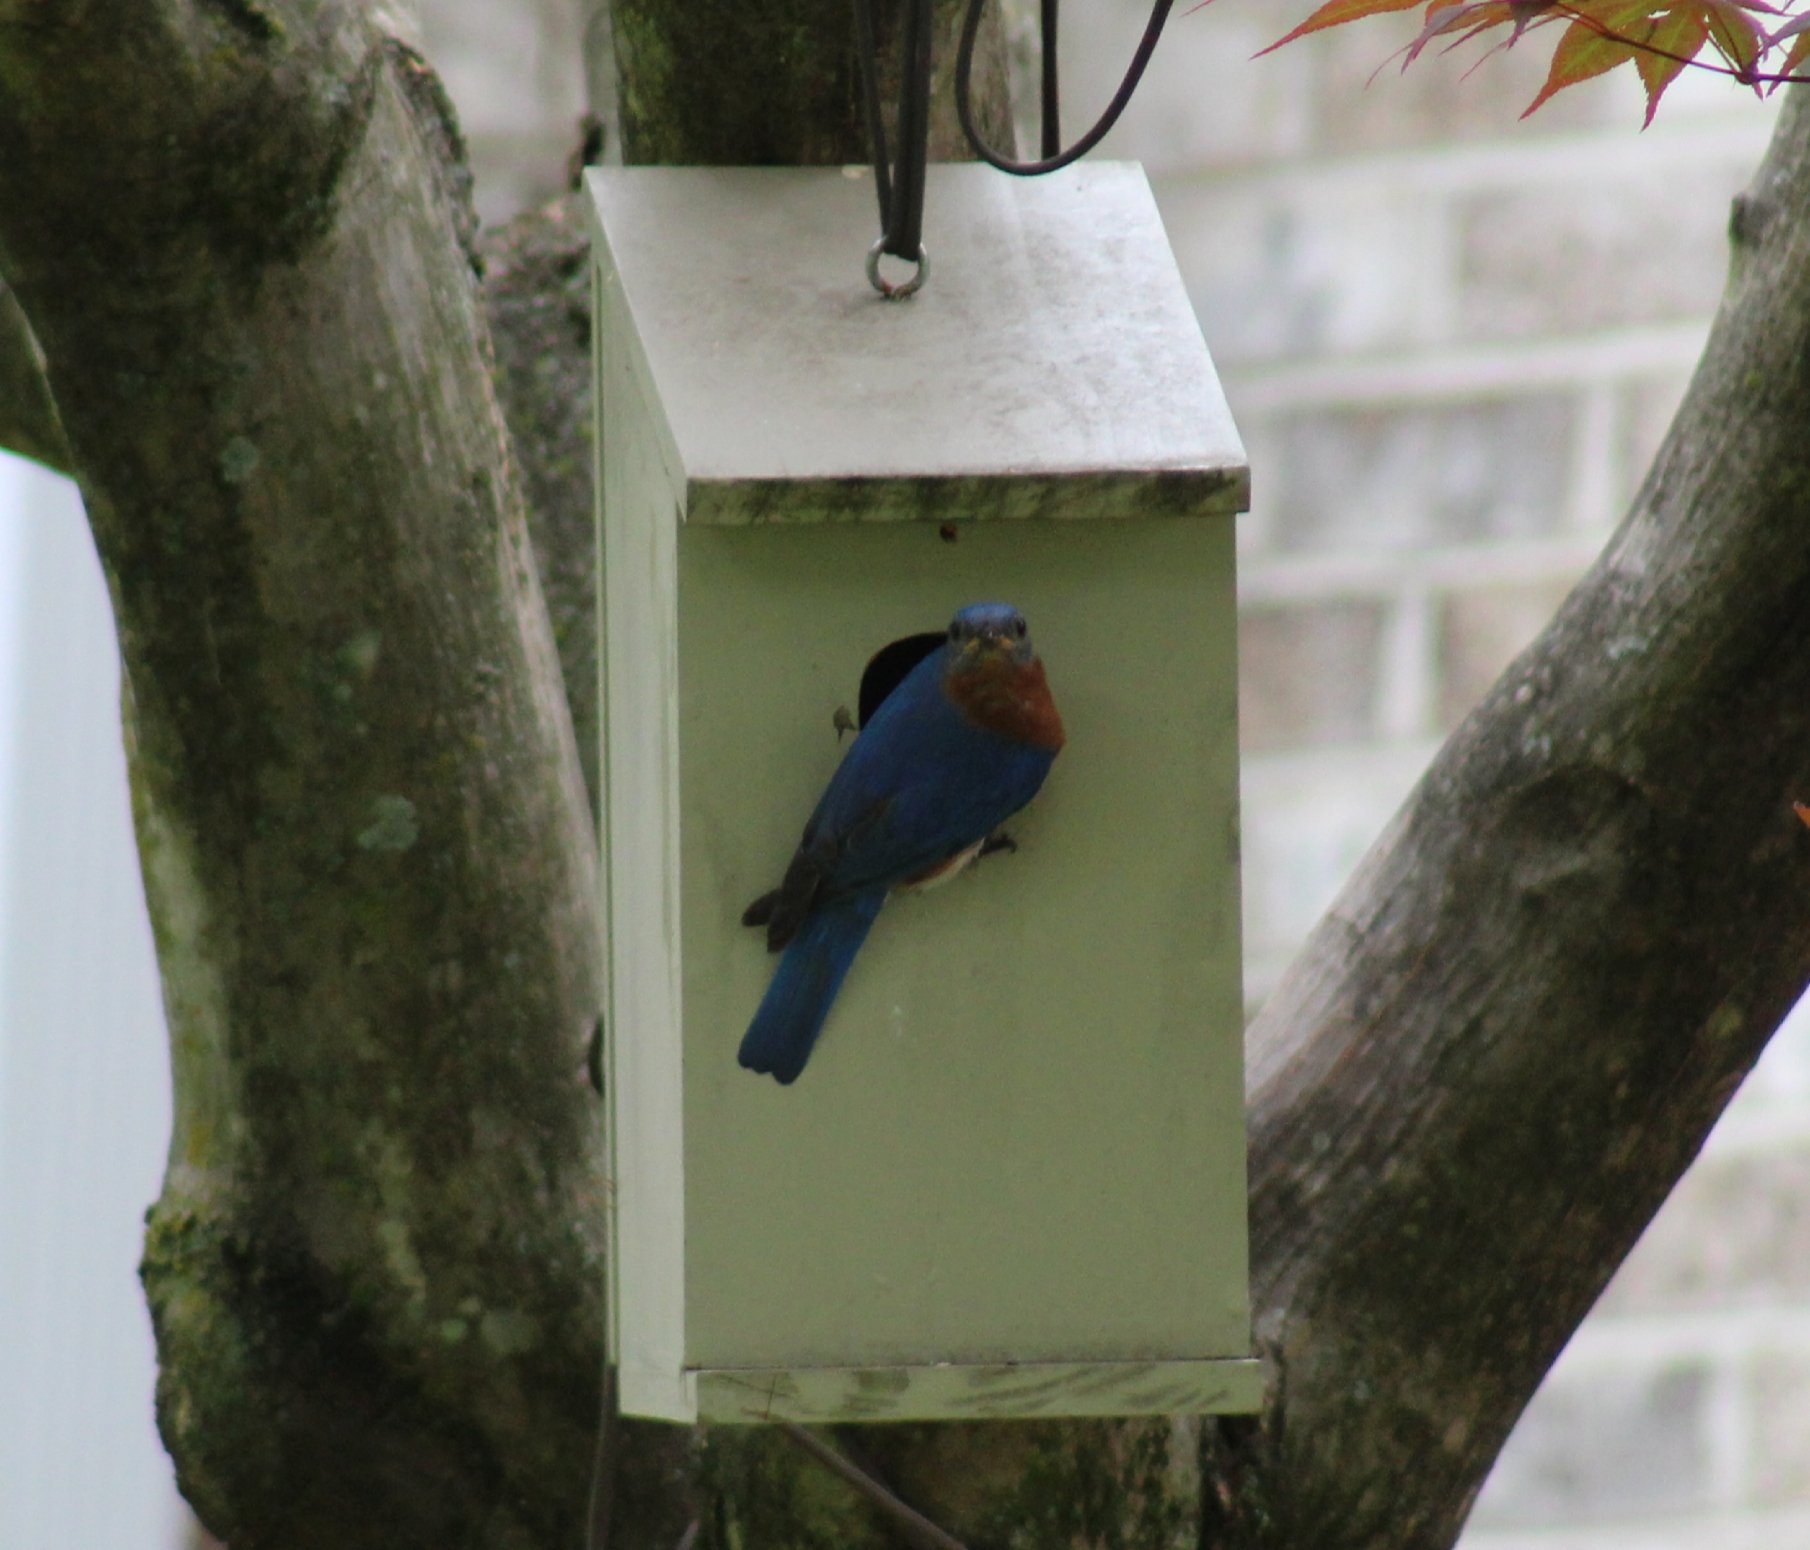 Male bluebird perched on nestbox - 5-25-2020